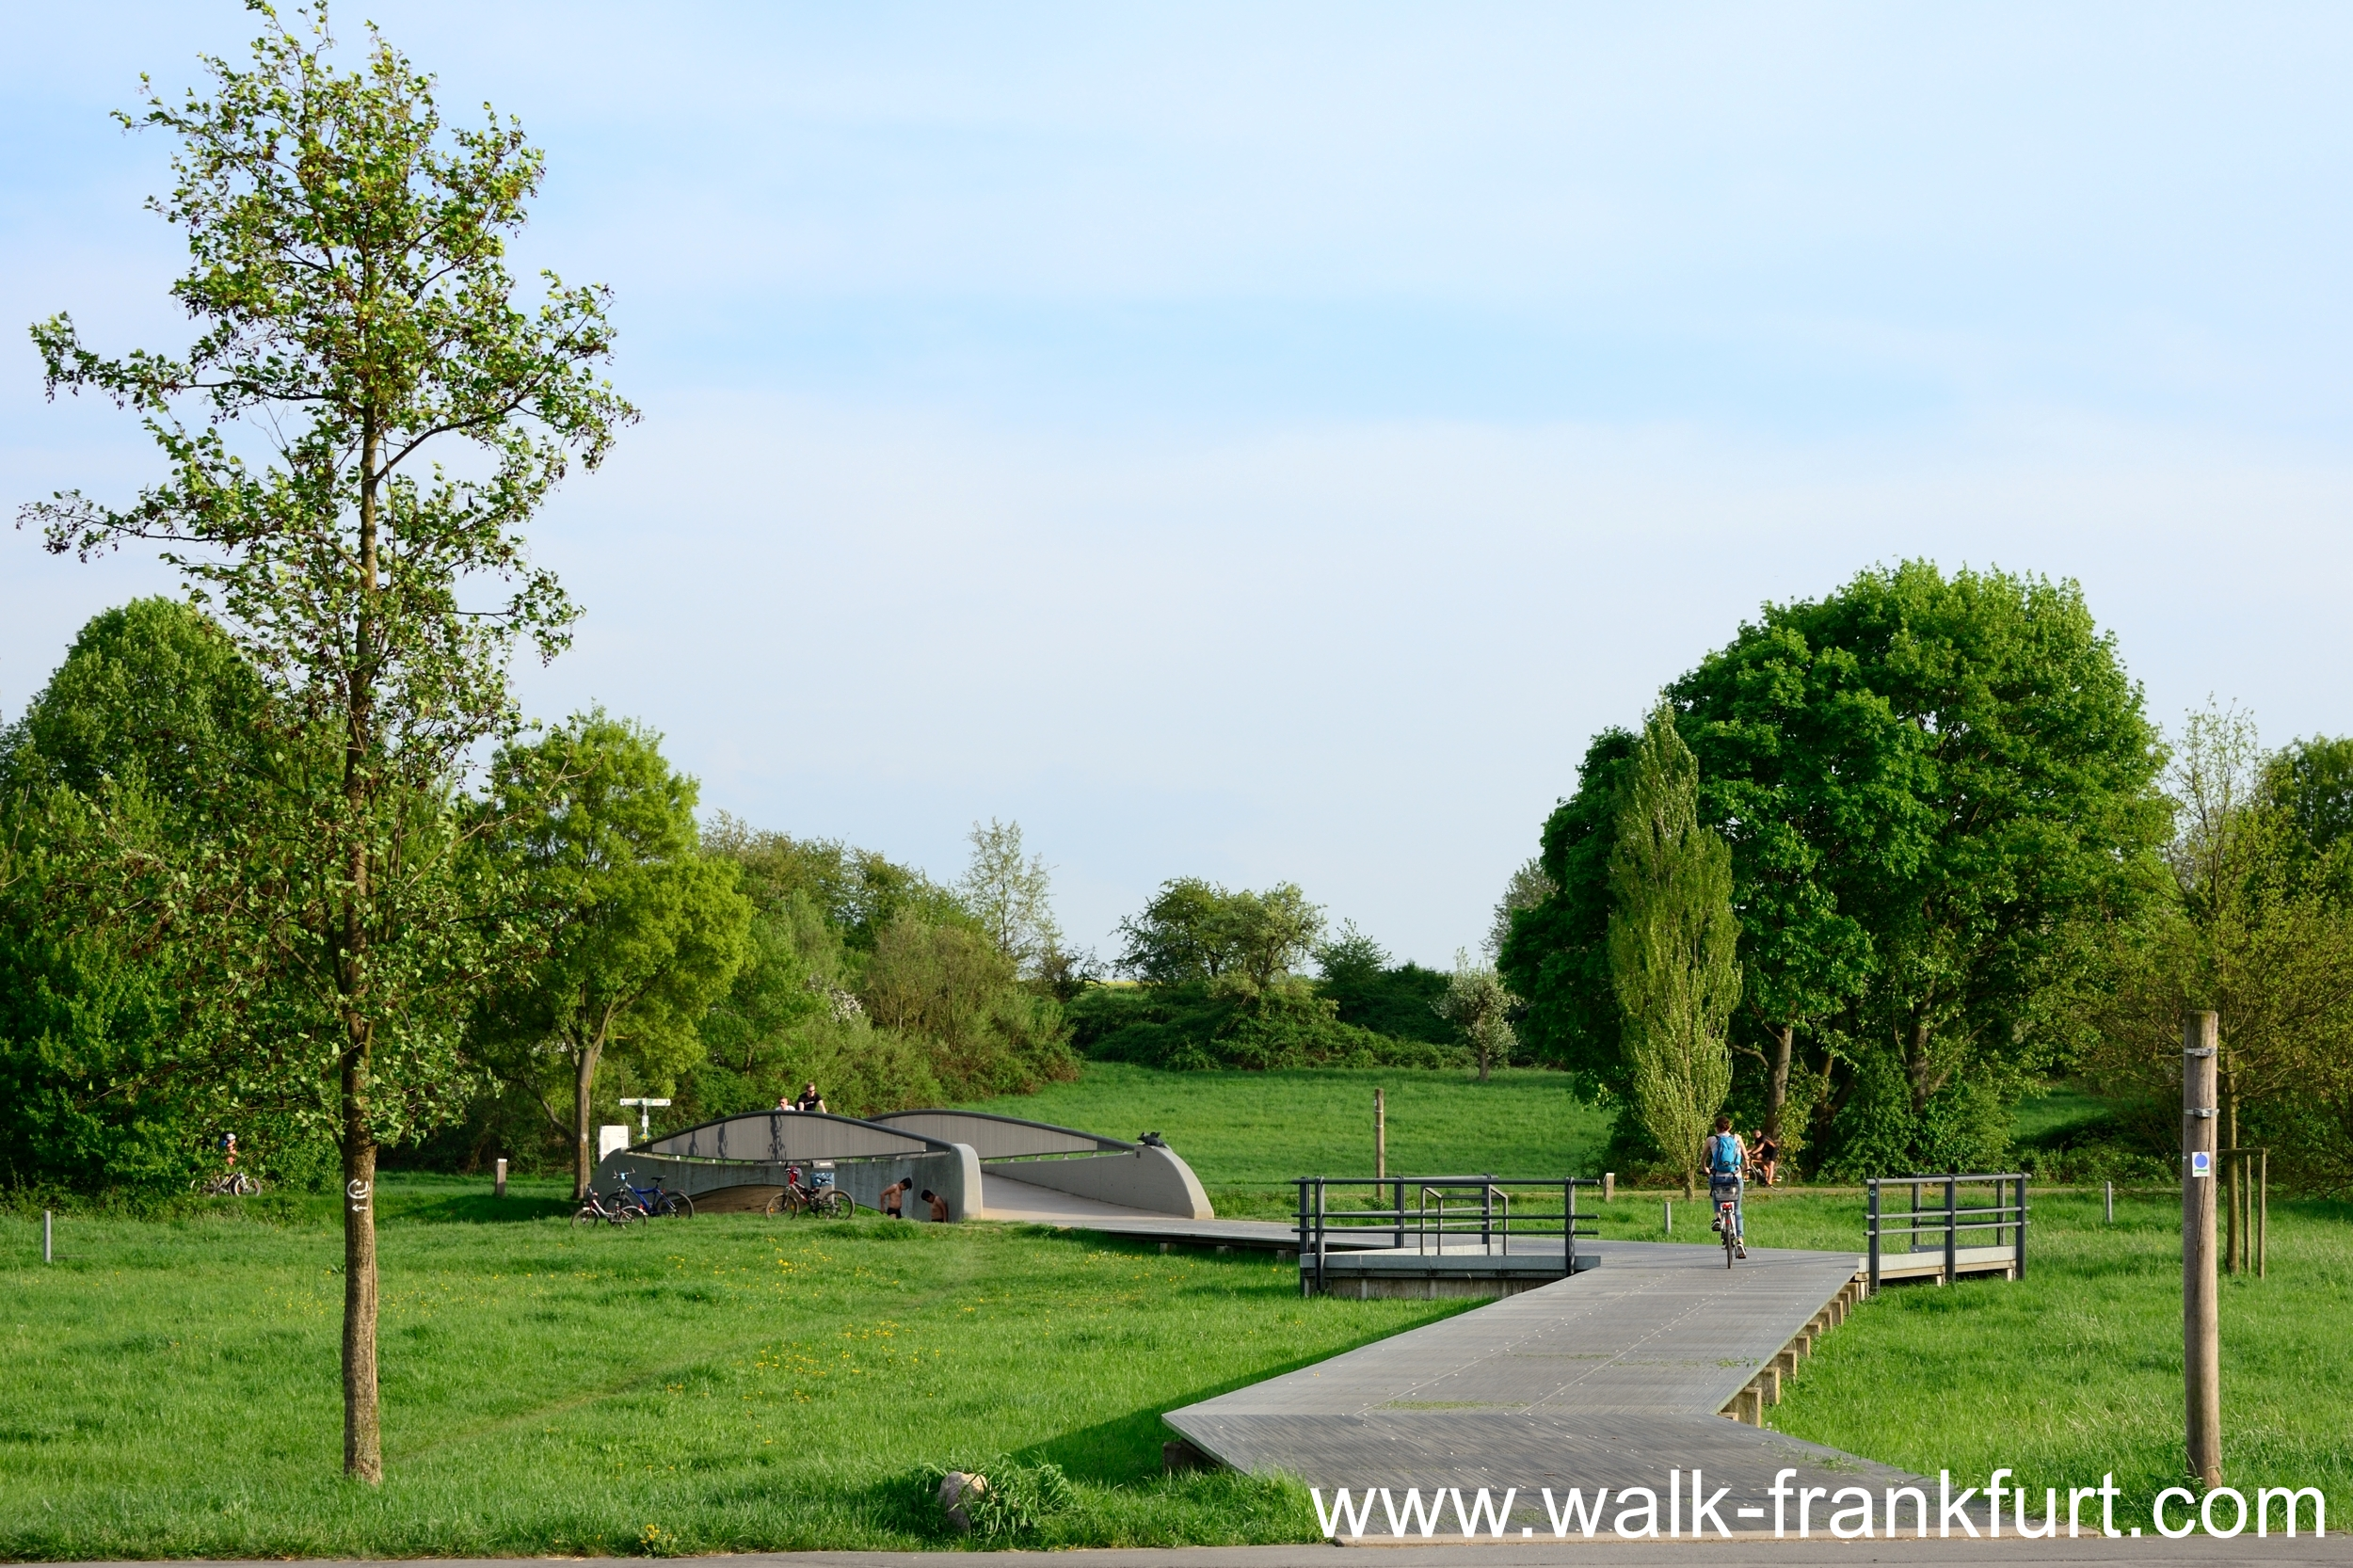 Cycle path to Bonames airfield